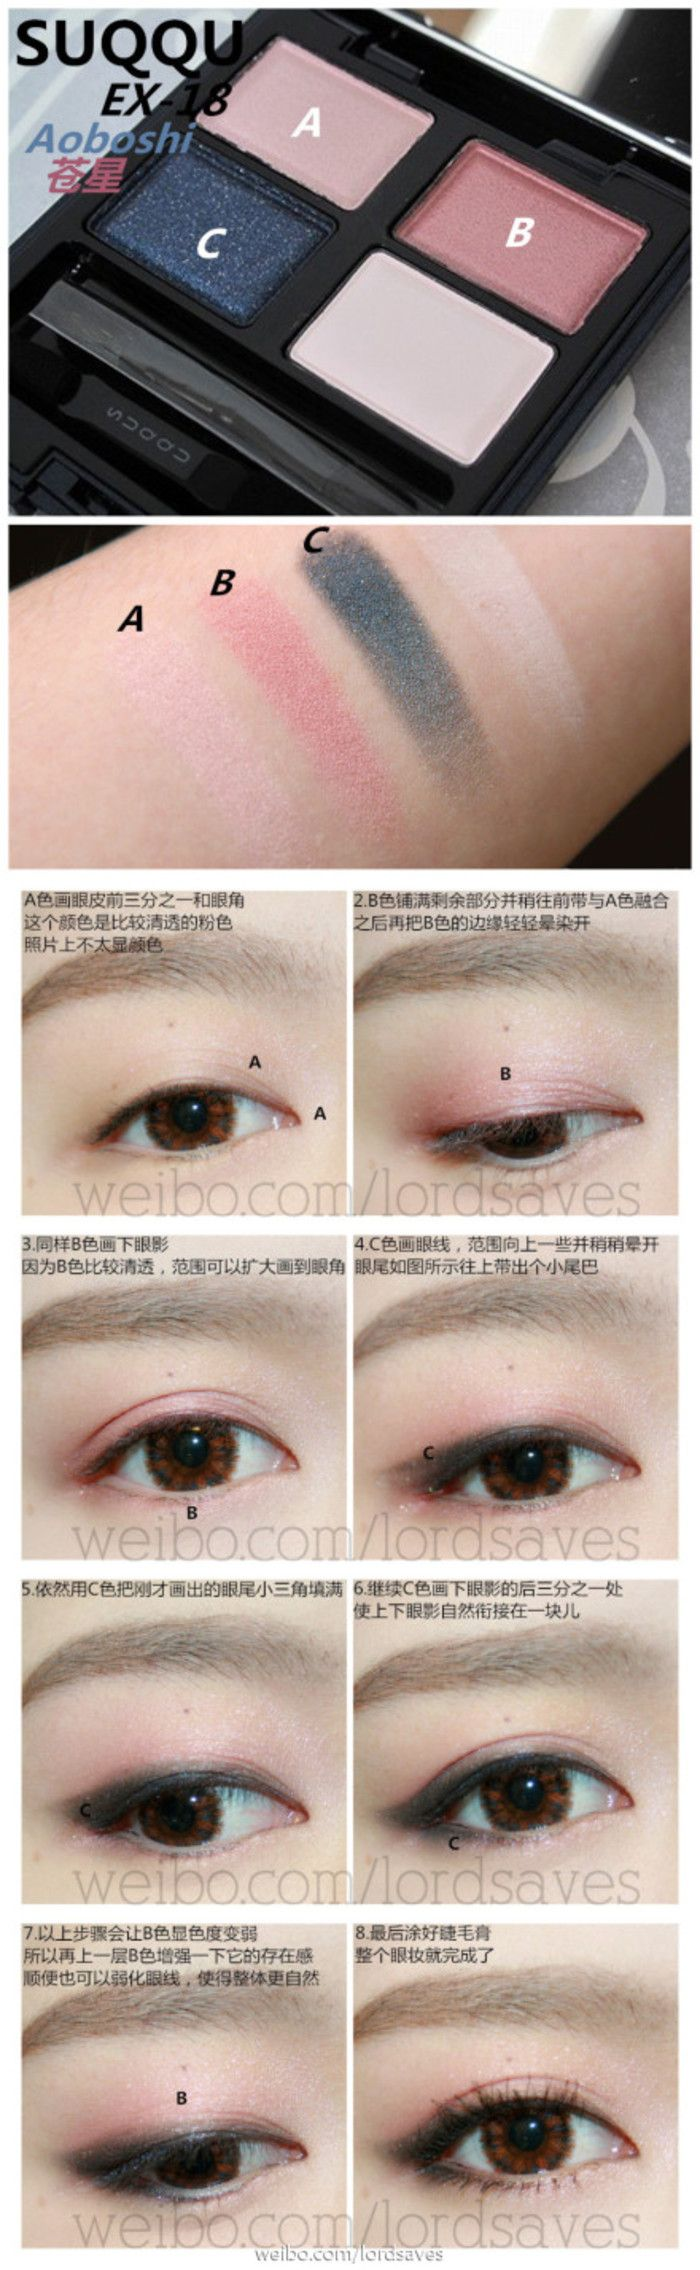 Naturally fade acne scars with lemon how to use lemon for chinese makeup tutorial for asian eyes navypink eyeshadow tutorial using the suqqu aoboshi baditri Image collections